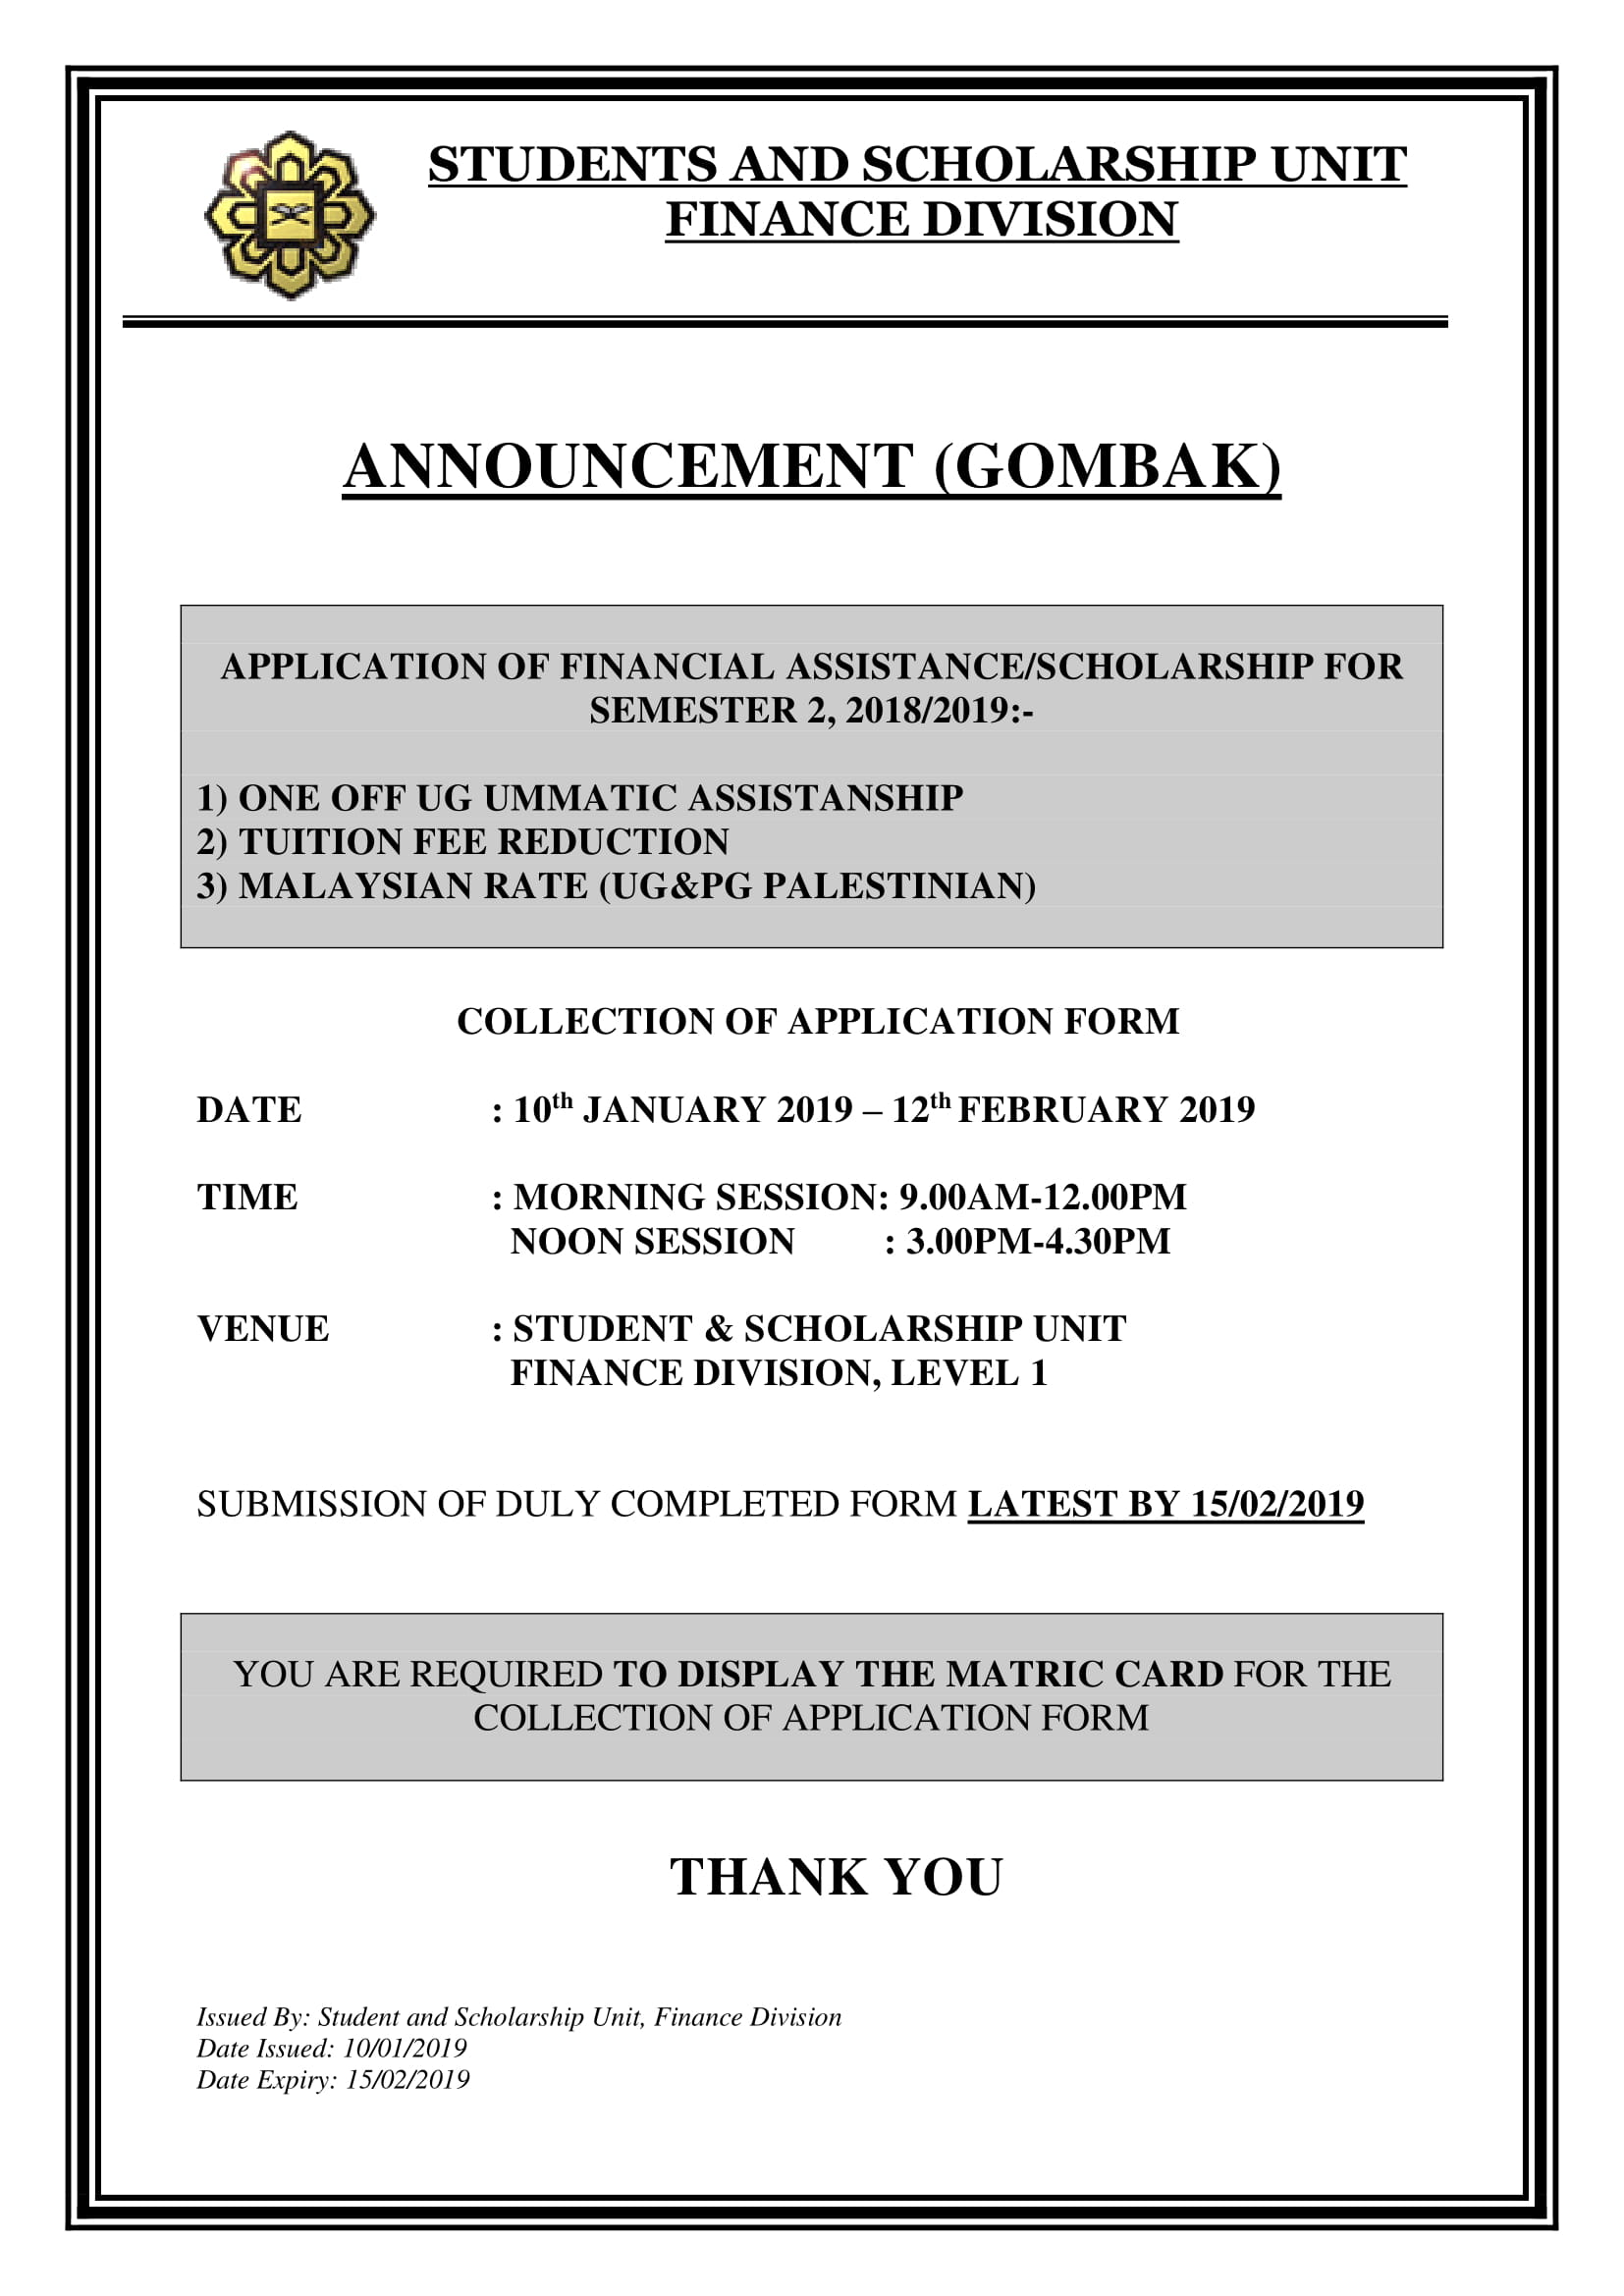 IFAC ANNOUNCEMENT GOMBAK PDF-1